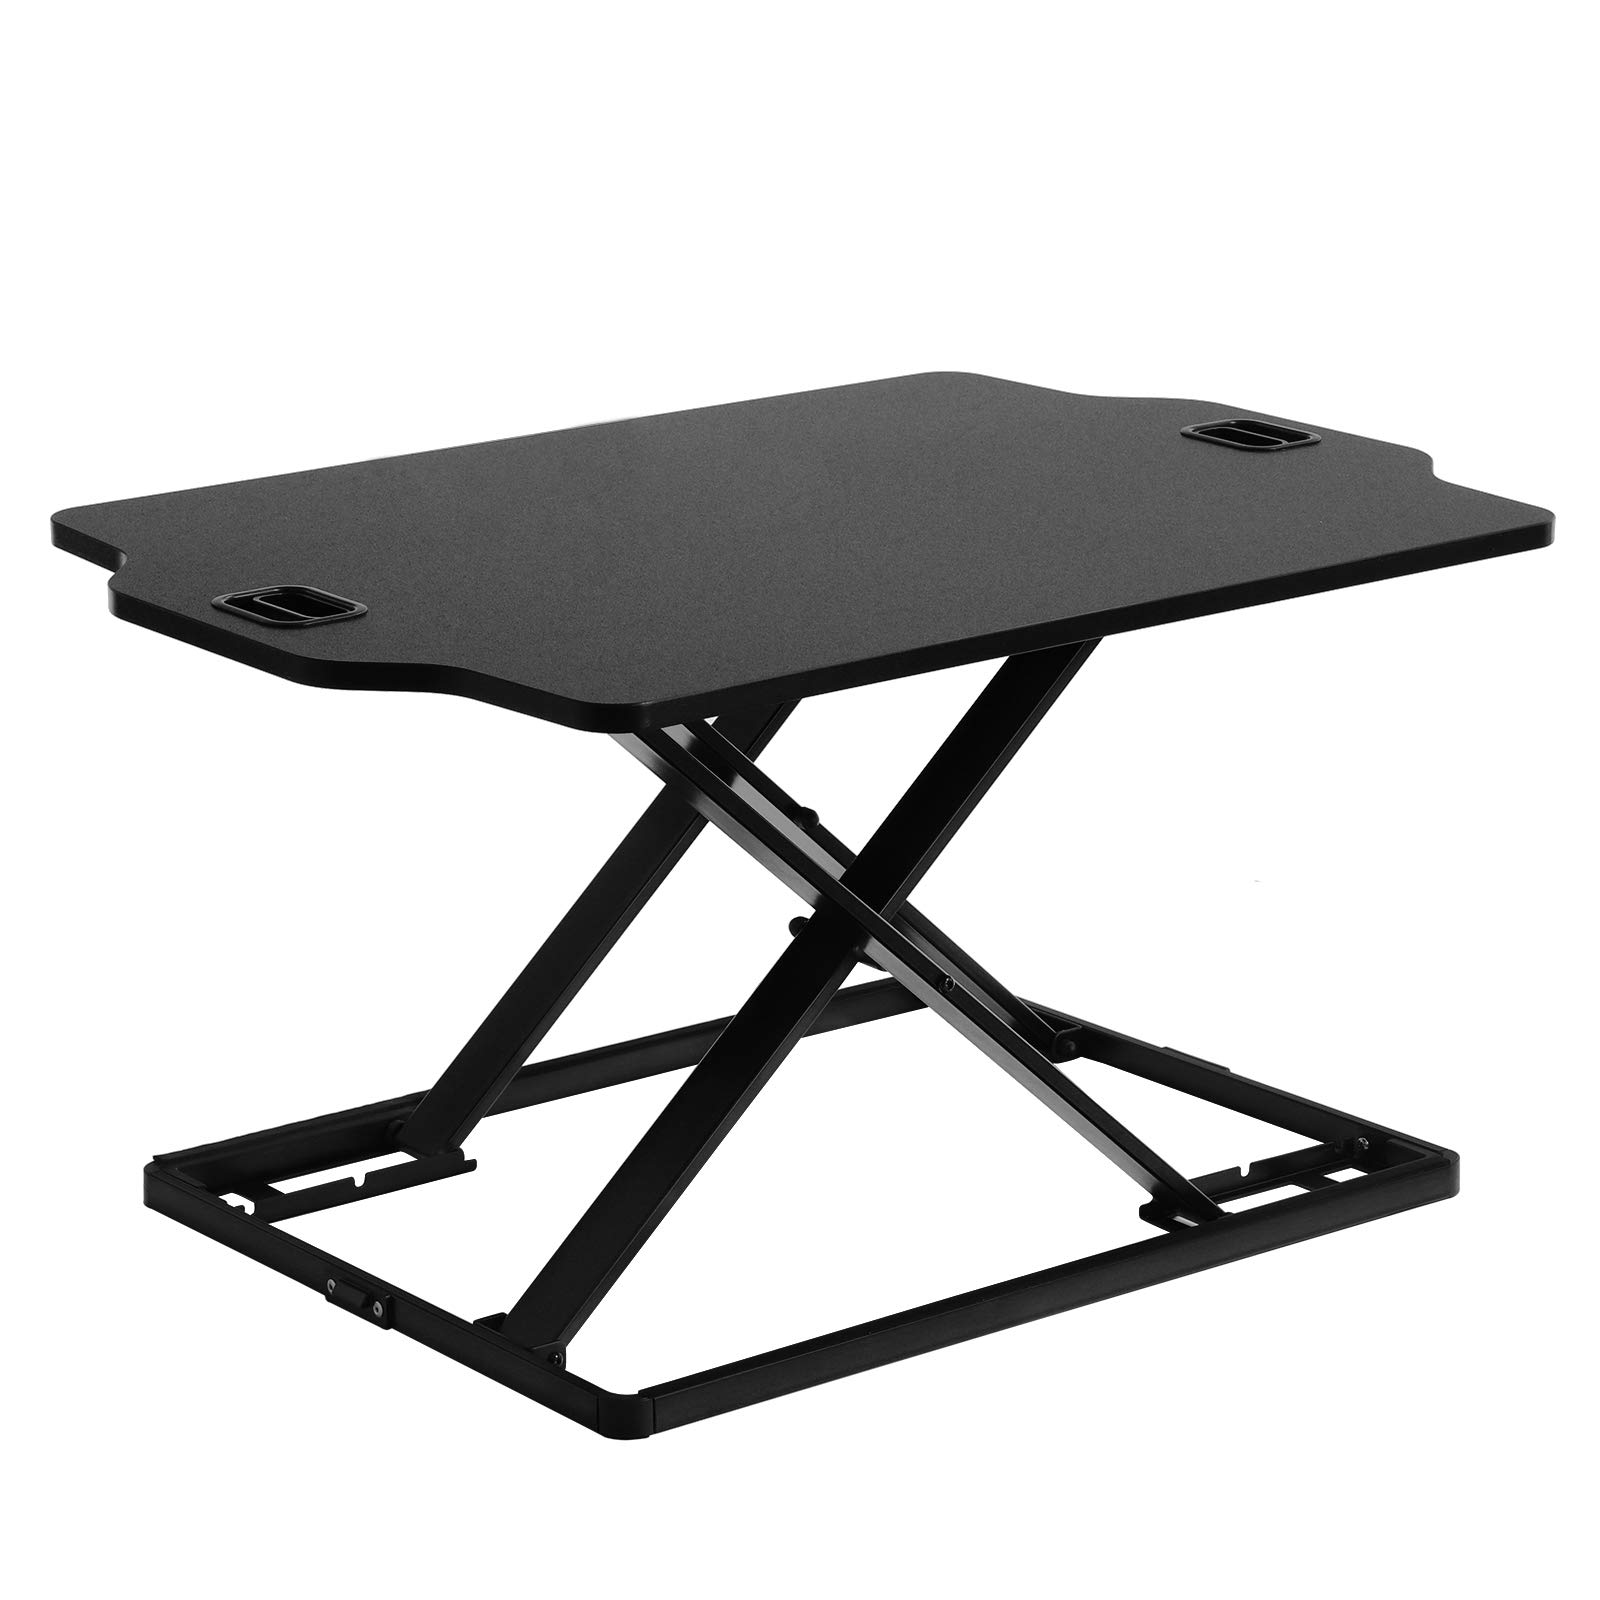 SONGMICS Standing Desk, Height Adjustable Sit to Stand Desk, for Computer, Laptop and Office Supply - Black, ULSD02BK